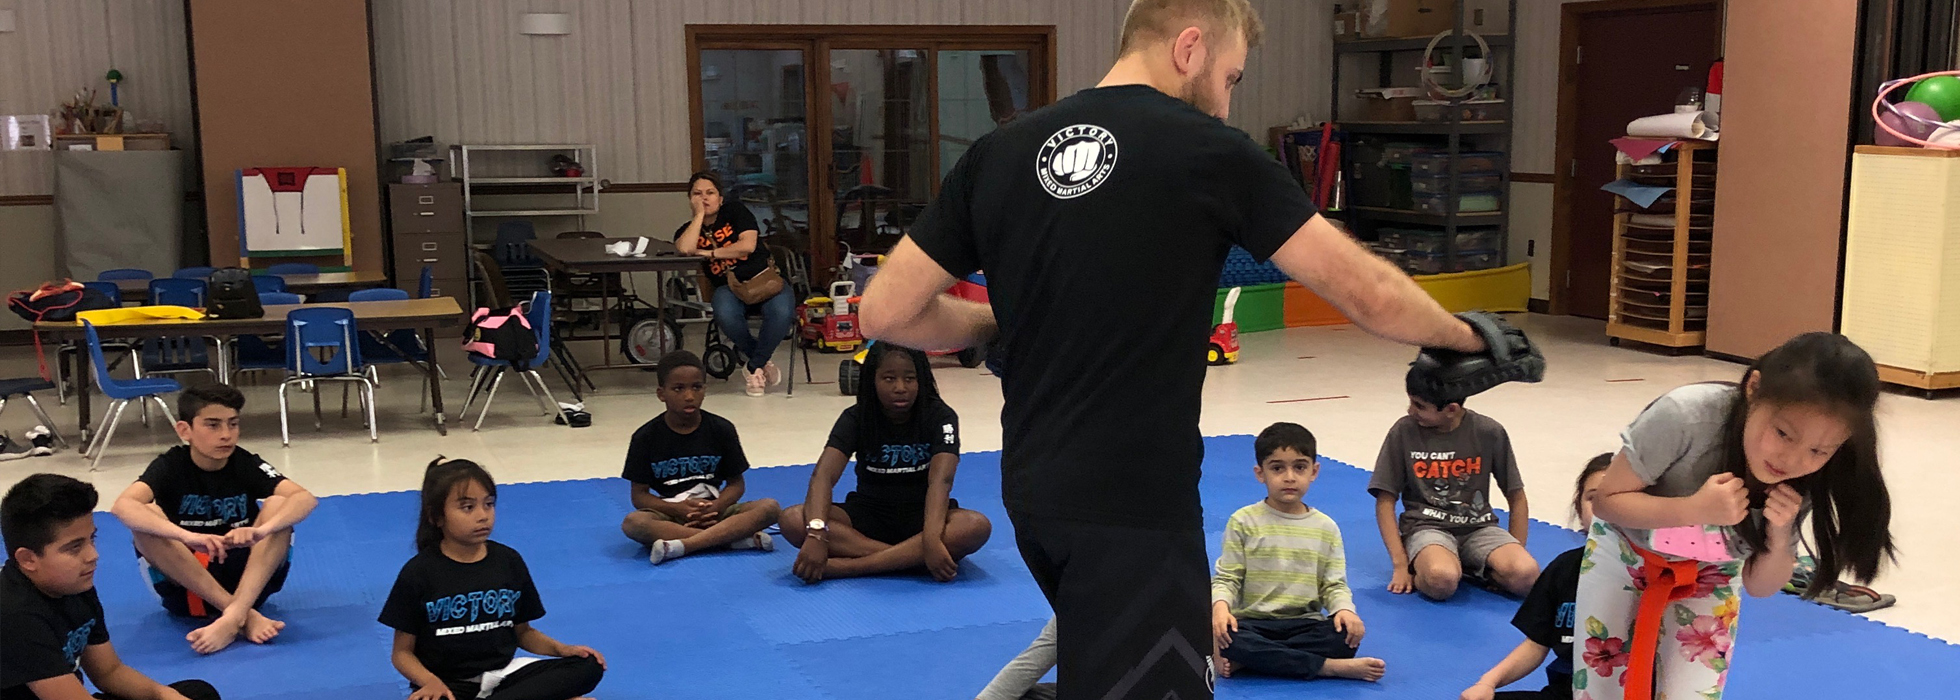 Mixed Martial Arts in Northbrook IL, Mixed Martial Arts near Wheeling IL, Mixed Martial Arts near Deerfield IL, Mixed Martial Arts near Glenview IL, Mixed Martial Arts near Prospect Heights IL, Mixed Martial Arts near Northfield IL